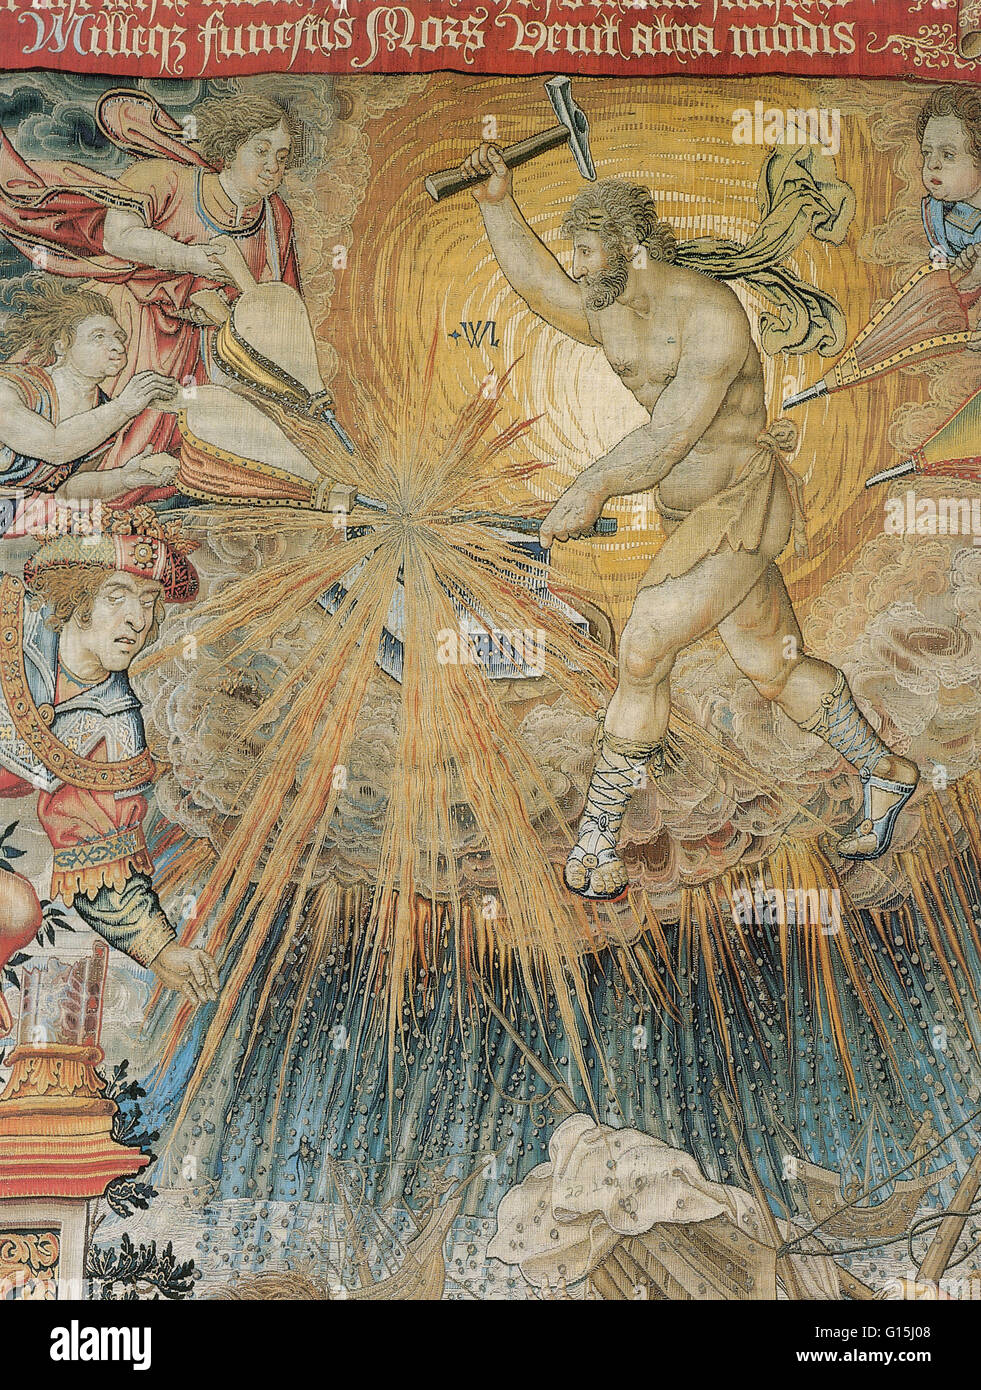 In Ancient Roman Religion And Myth Vulcan Is The God Of